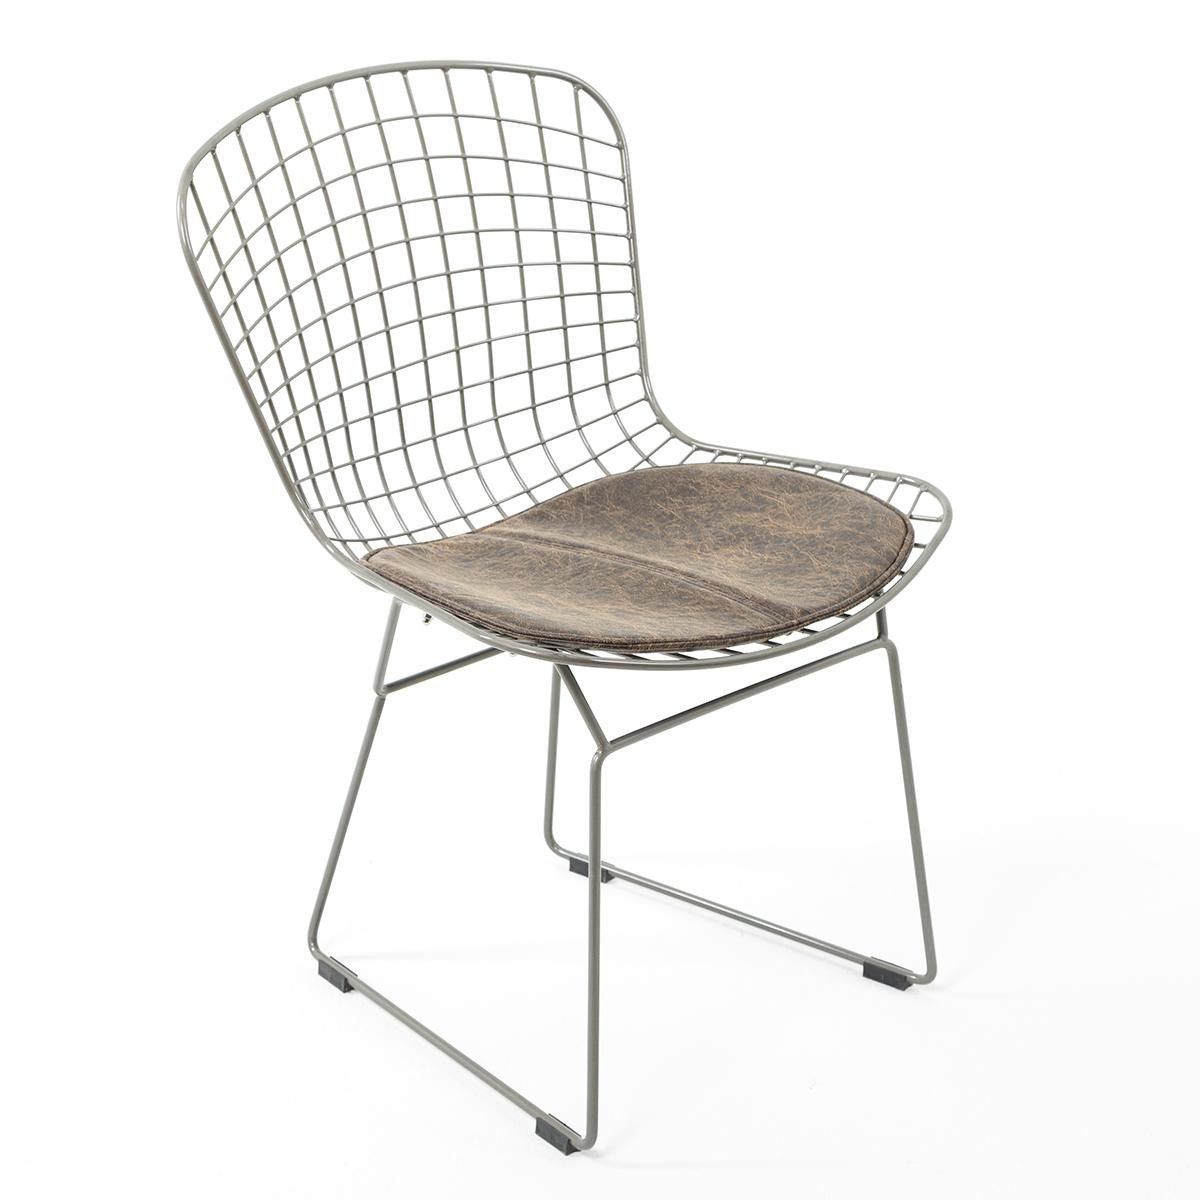 Chair Furniture Emporium modern metal mesh chair with leather cushion | e&d: main space